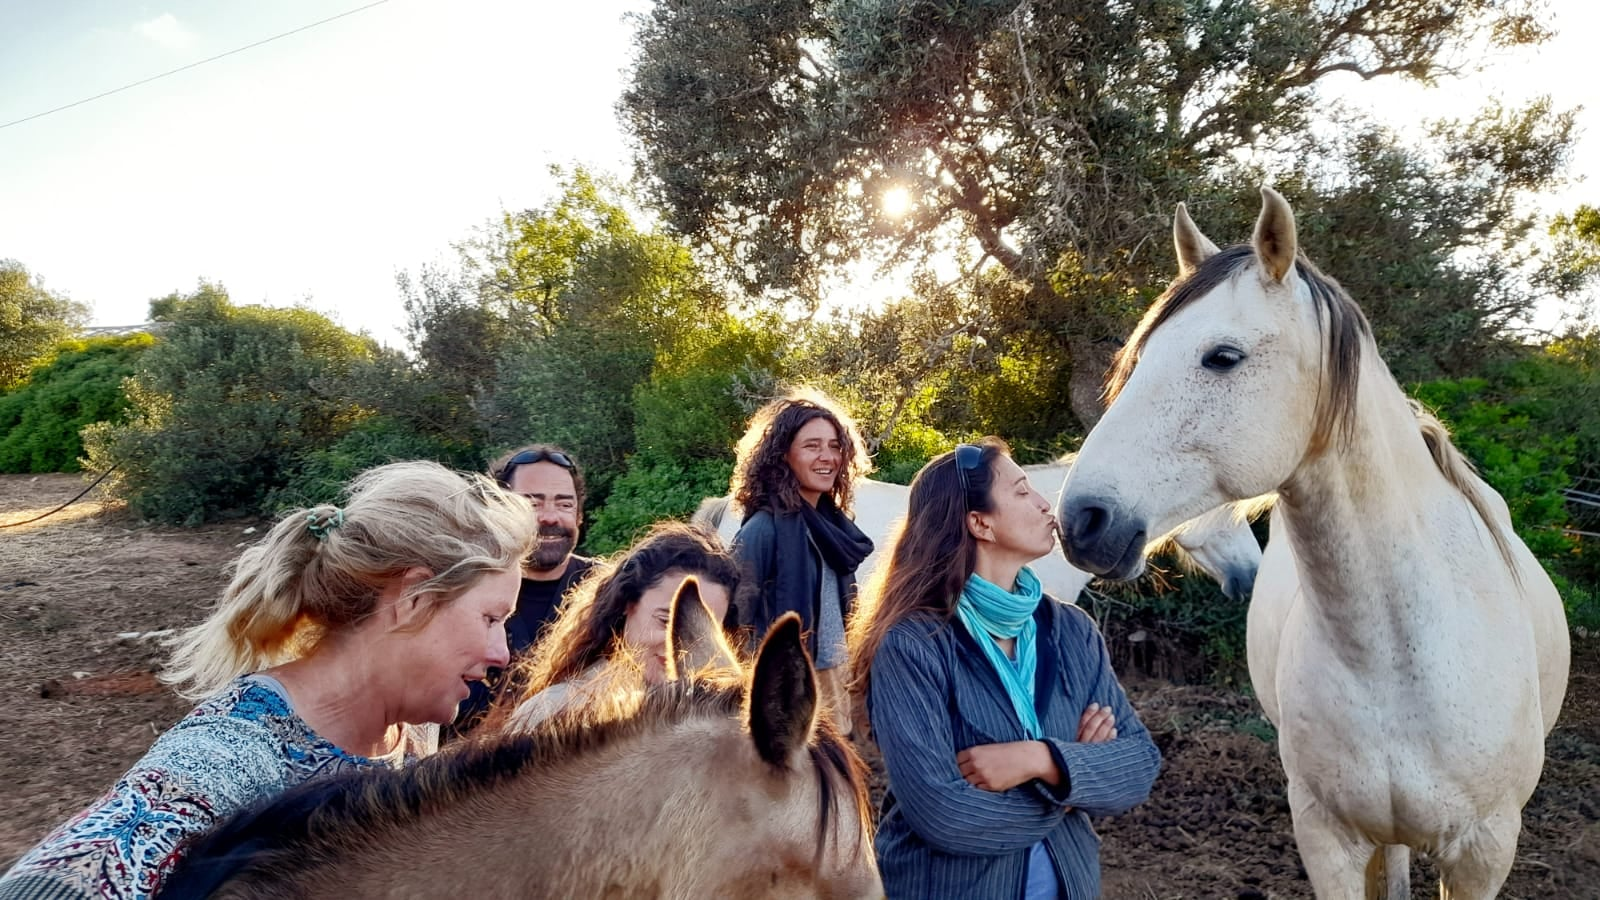 State of being - rescued horses